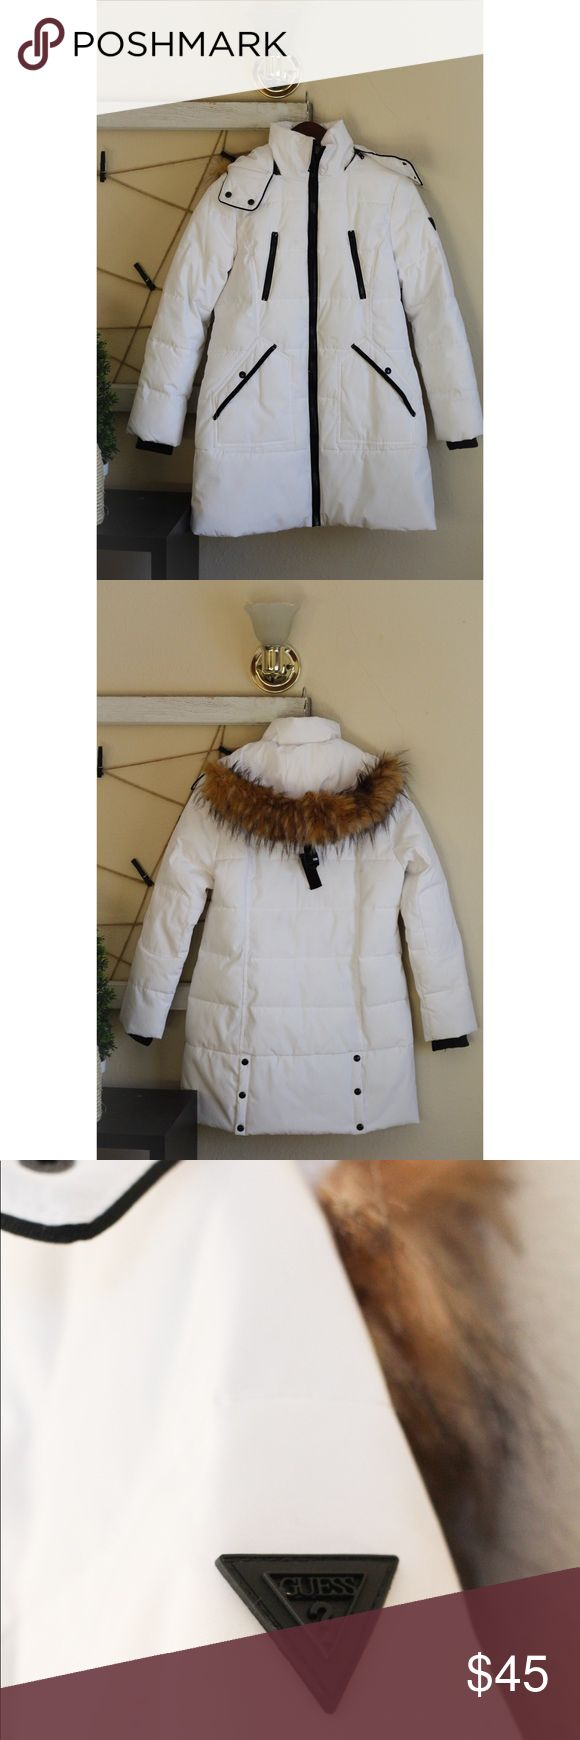 White Guess long jacket w/ fur hood Worn once, in great condition! Guess Jackets & Coats Trench Coats